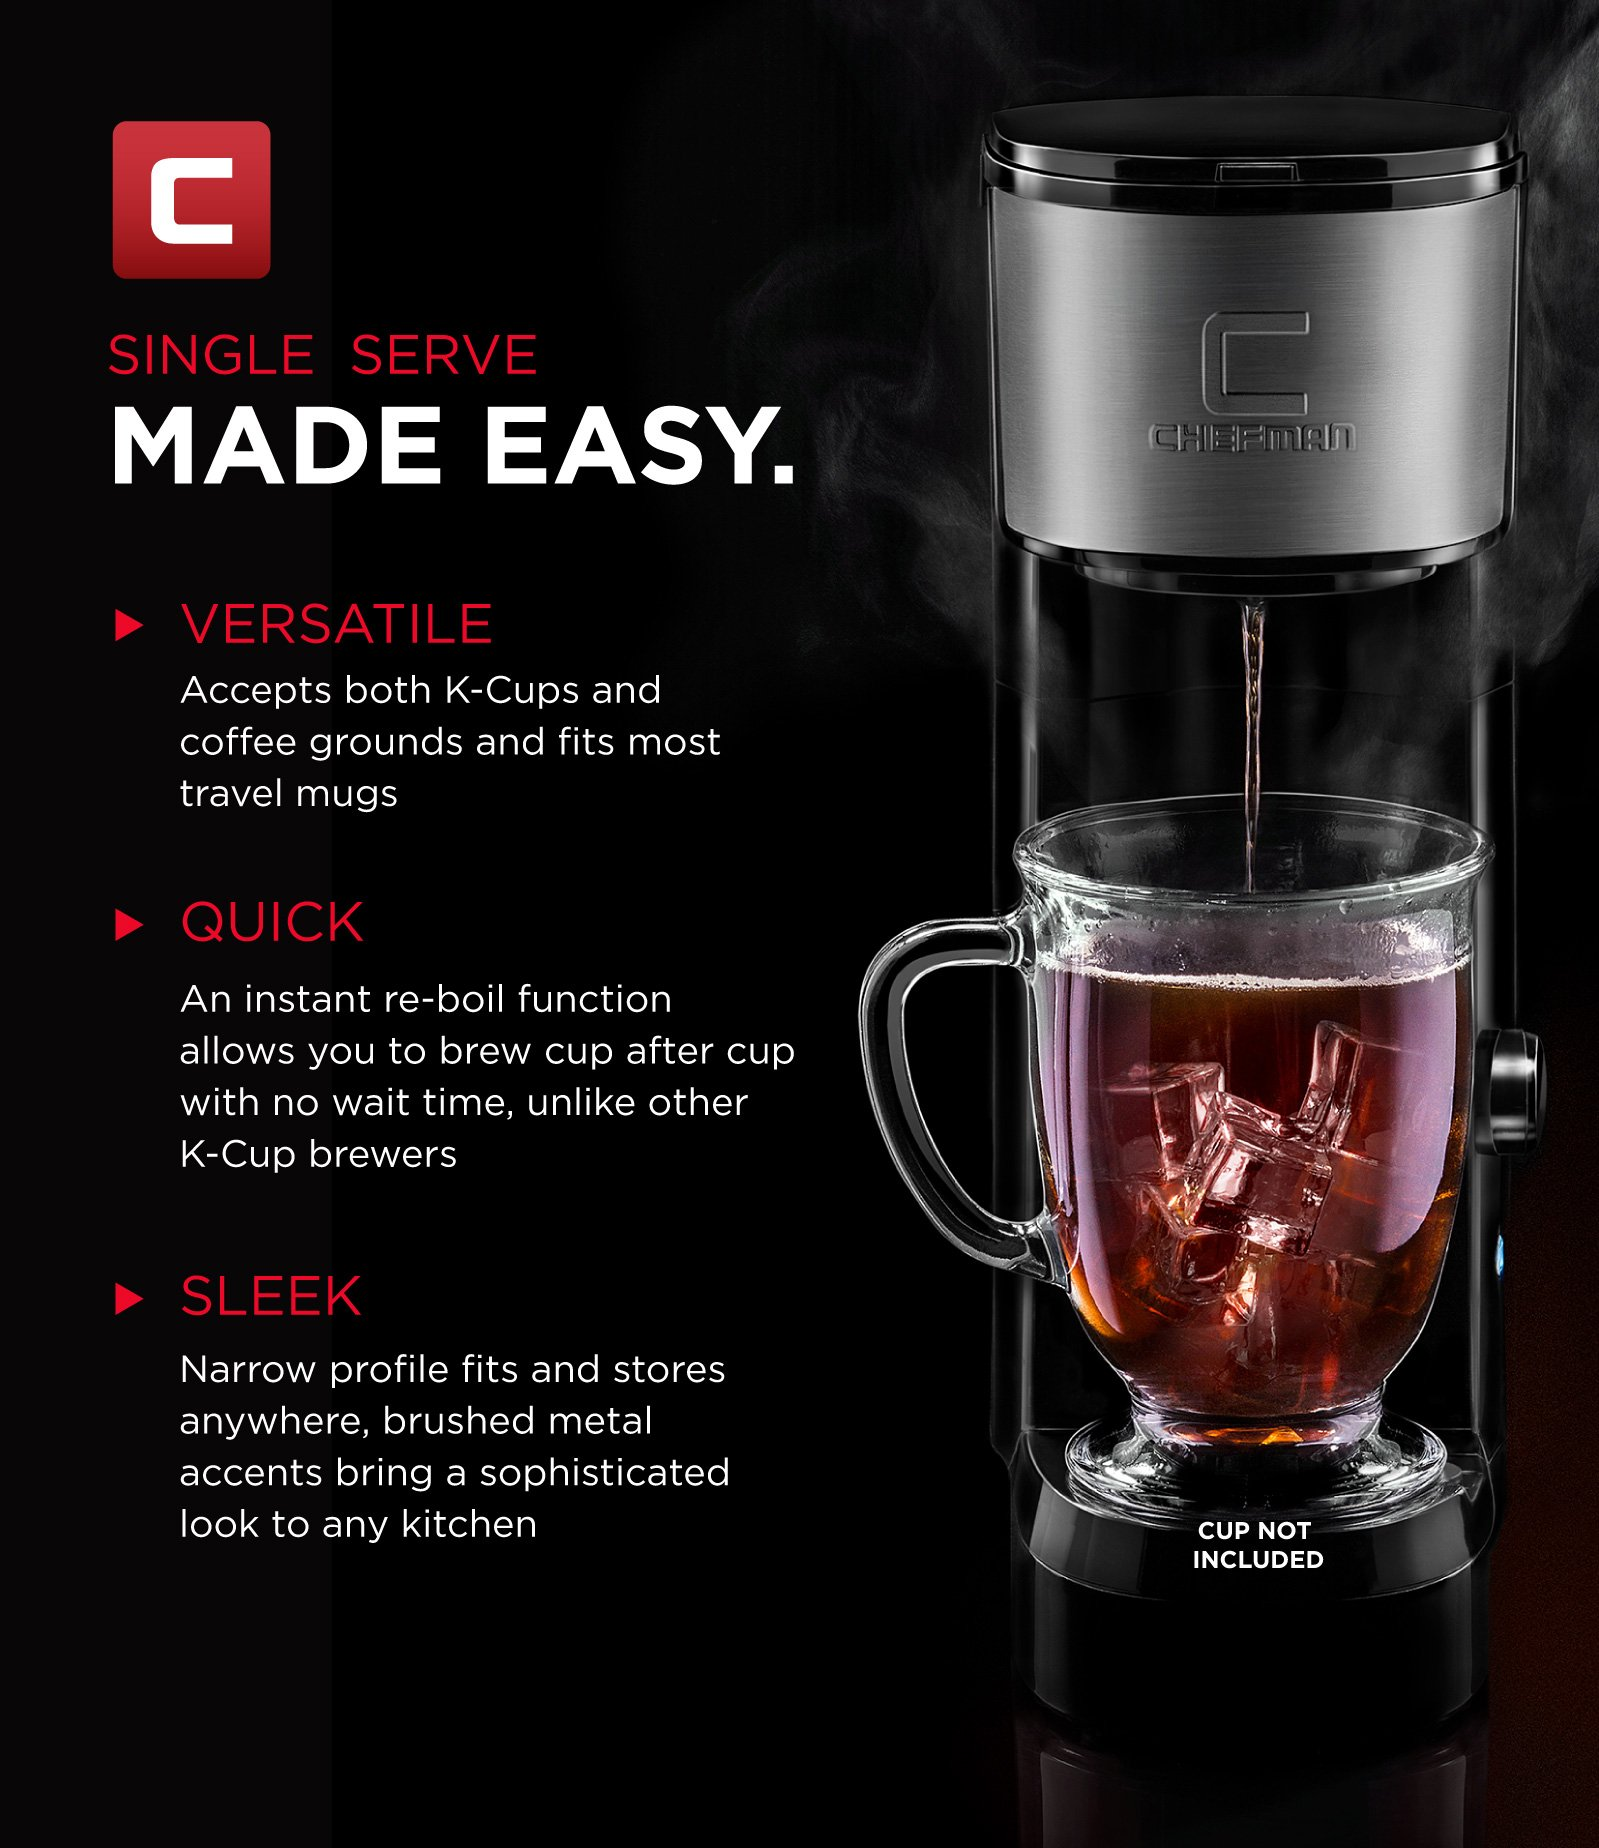 Chefman Coffee Maker K-Cup InstaBrew Brewer - Free Filter Included For Use With Coffee Grounds - Instant Reboil - Single Serve-Mug NOT Included by Chefman (Image #3)